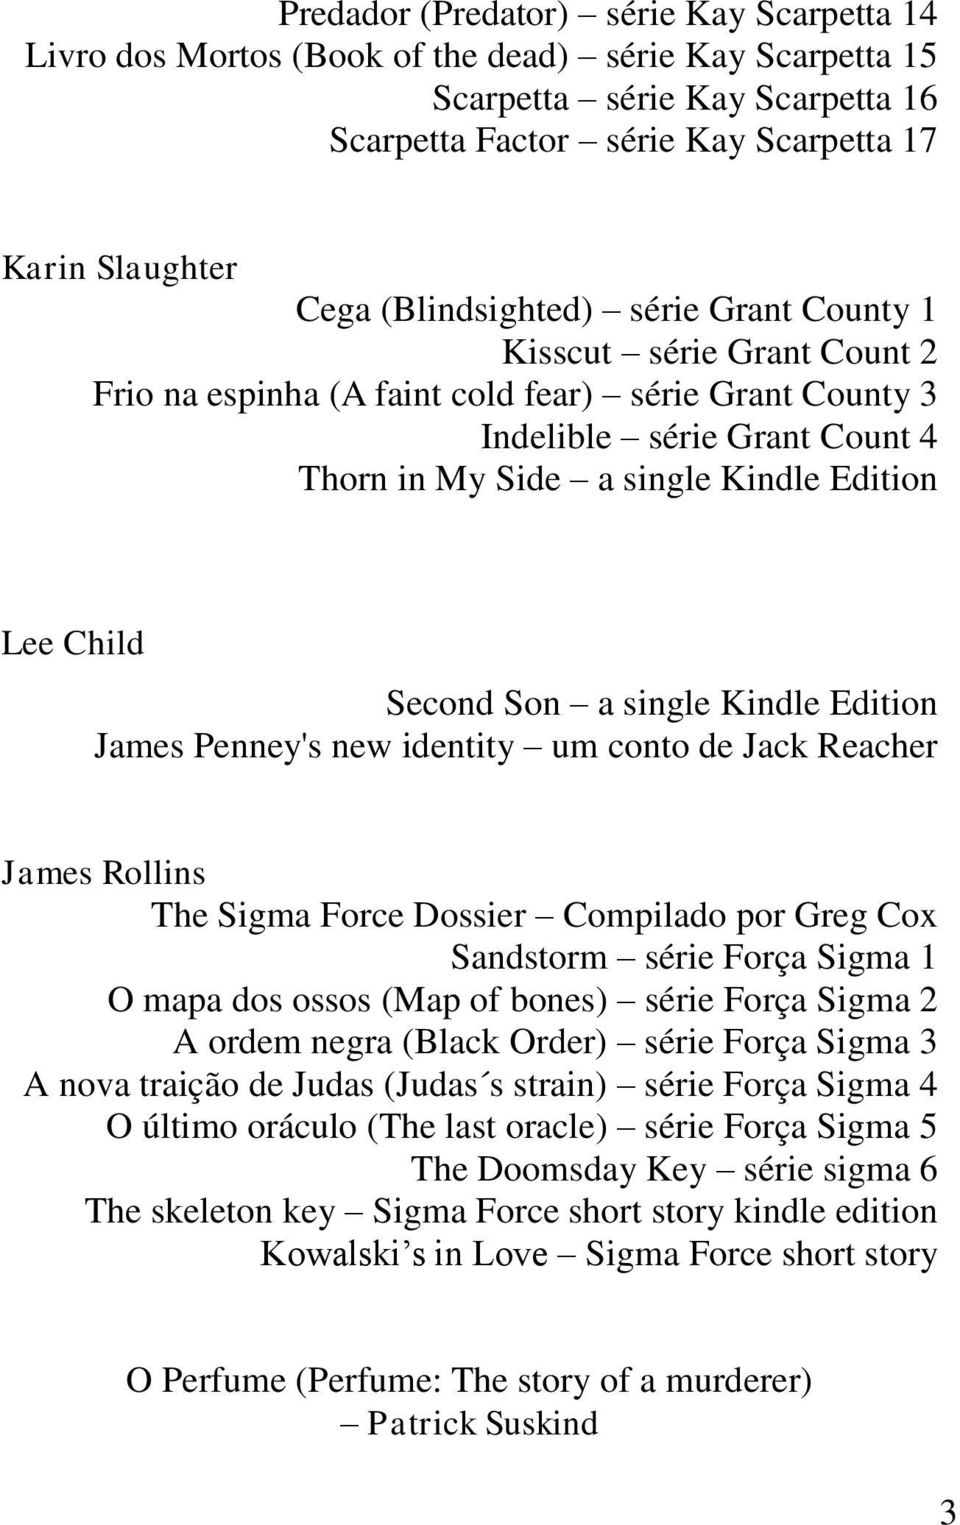 Child Second Son a single Kindle Edition James Penney's new identity um conto de Jack Reacher James Rollins The Sigma Force Dossier Compilado por Greg Cox Sandstorm série Força Sigma 1 O mapa dos